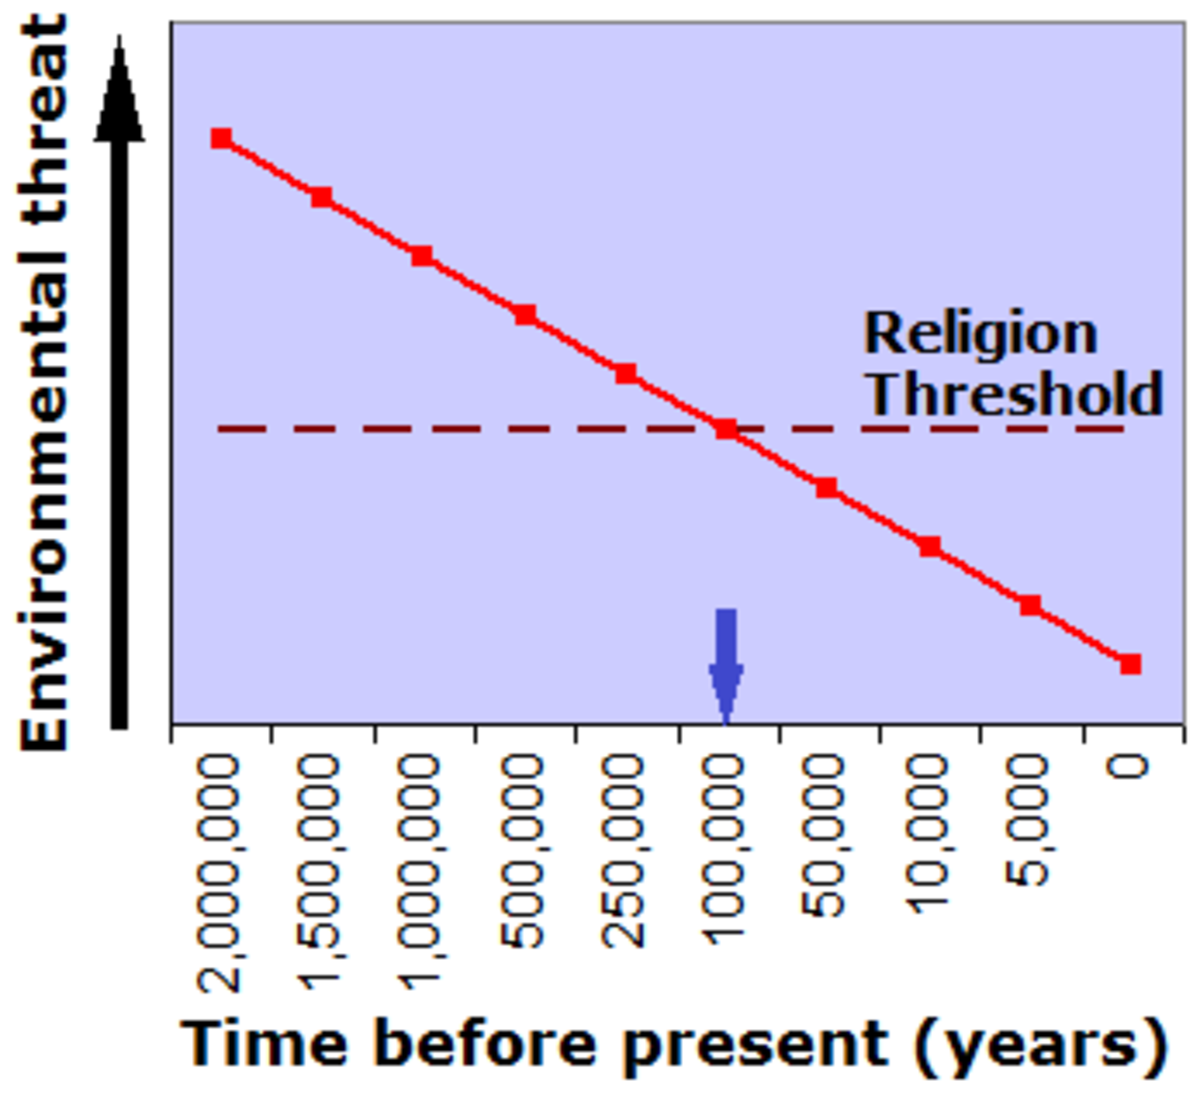 As threat from the environment decreased, humanity was able to safely allocate time to spiritual matters 100,000 years ago.